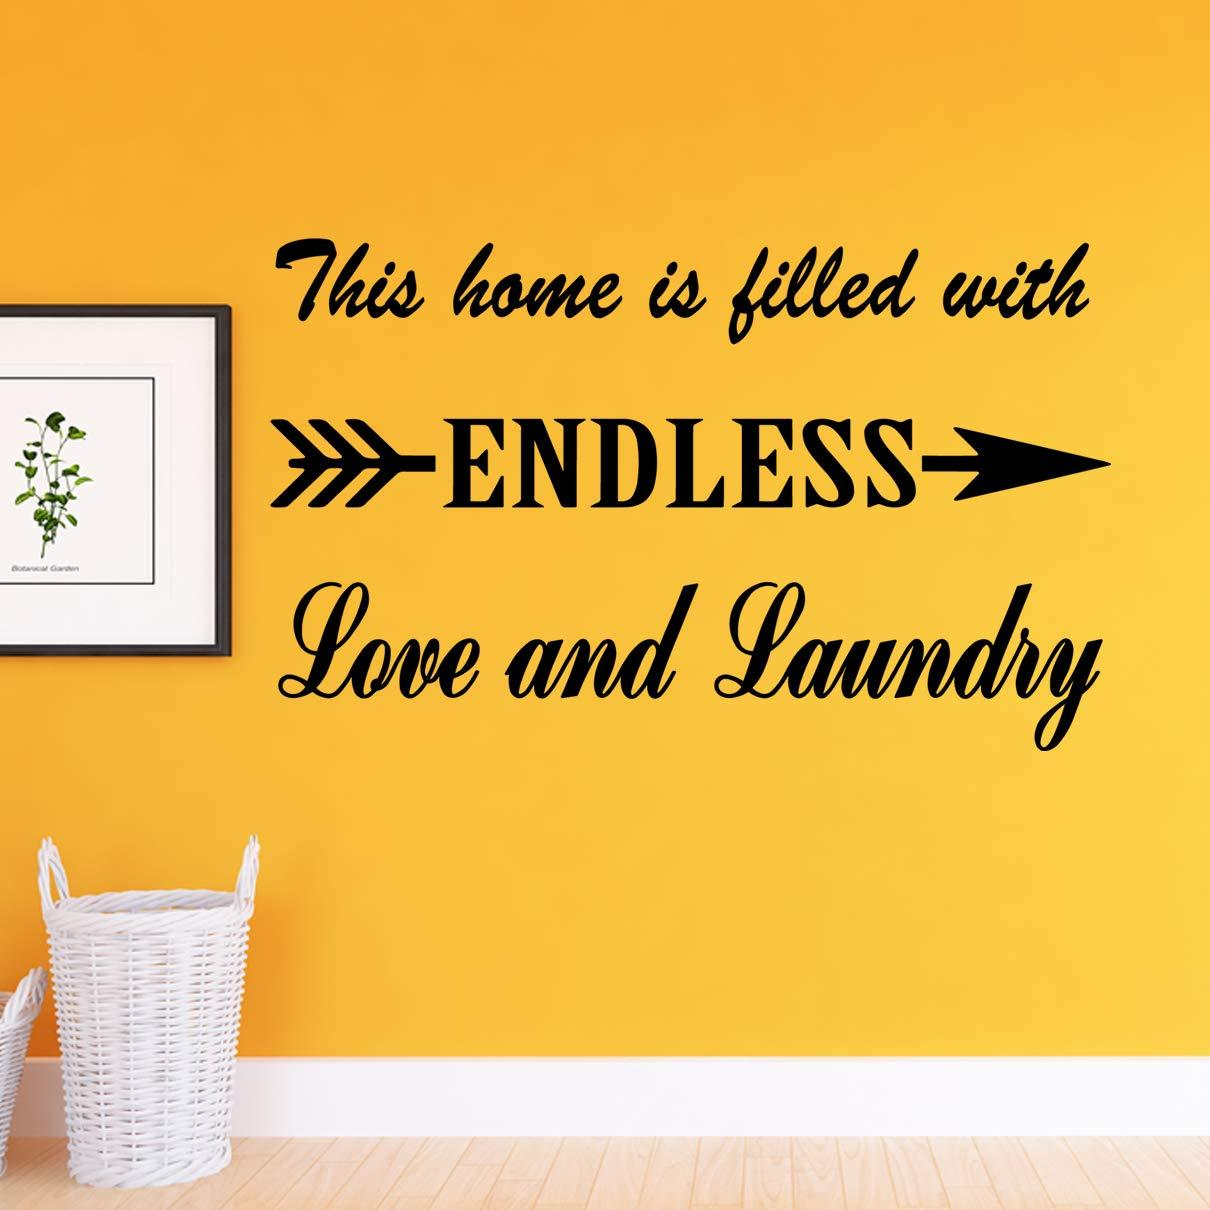 VWAQ This Home is Filled with Endless Love and Laundry - Laundry Room Wall Quotes Decal - VWAQ Vinyl Wall Art Quotes and Prints